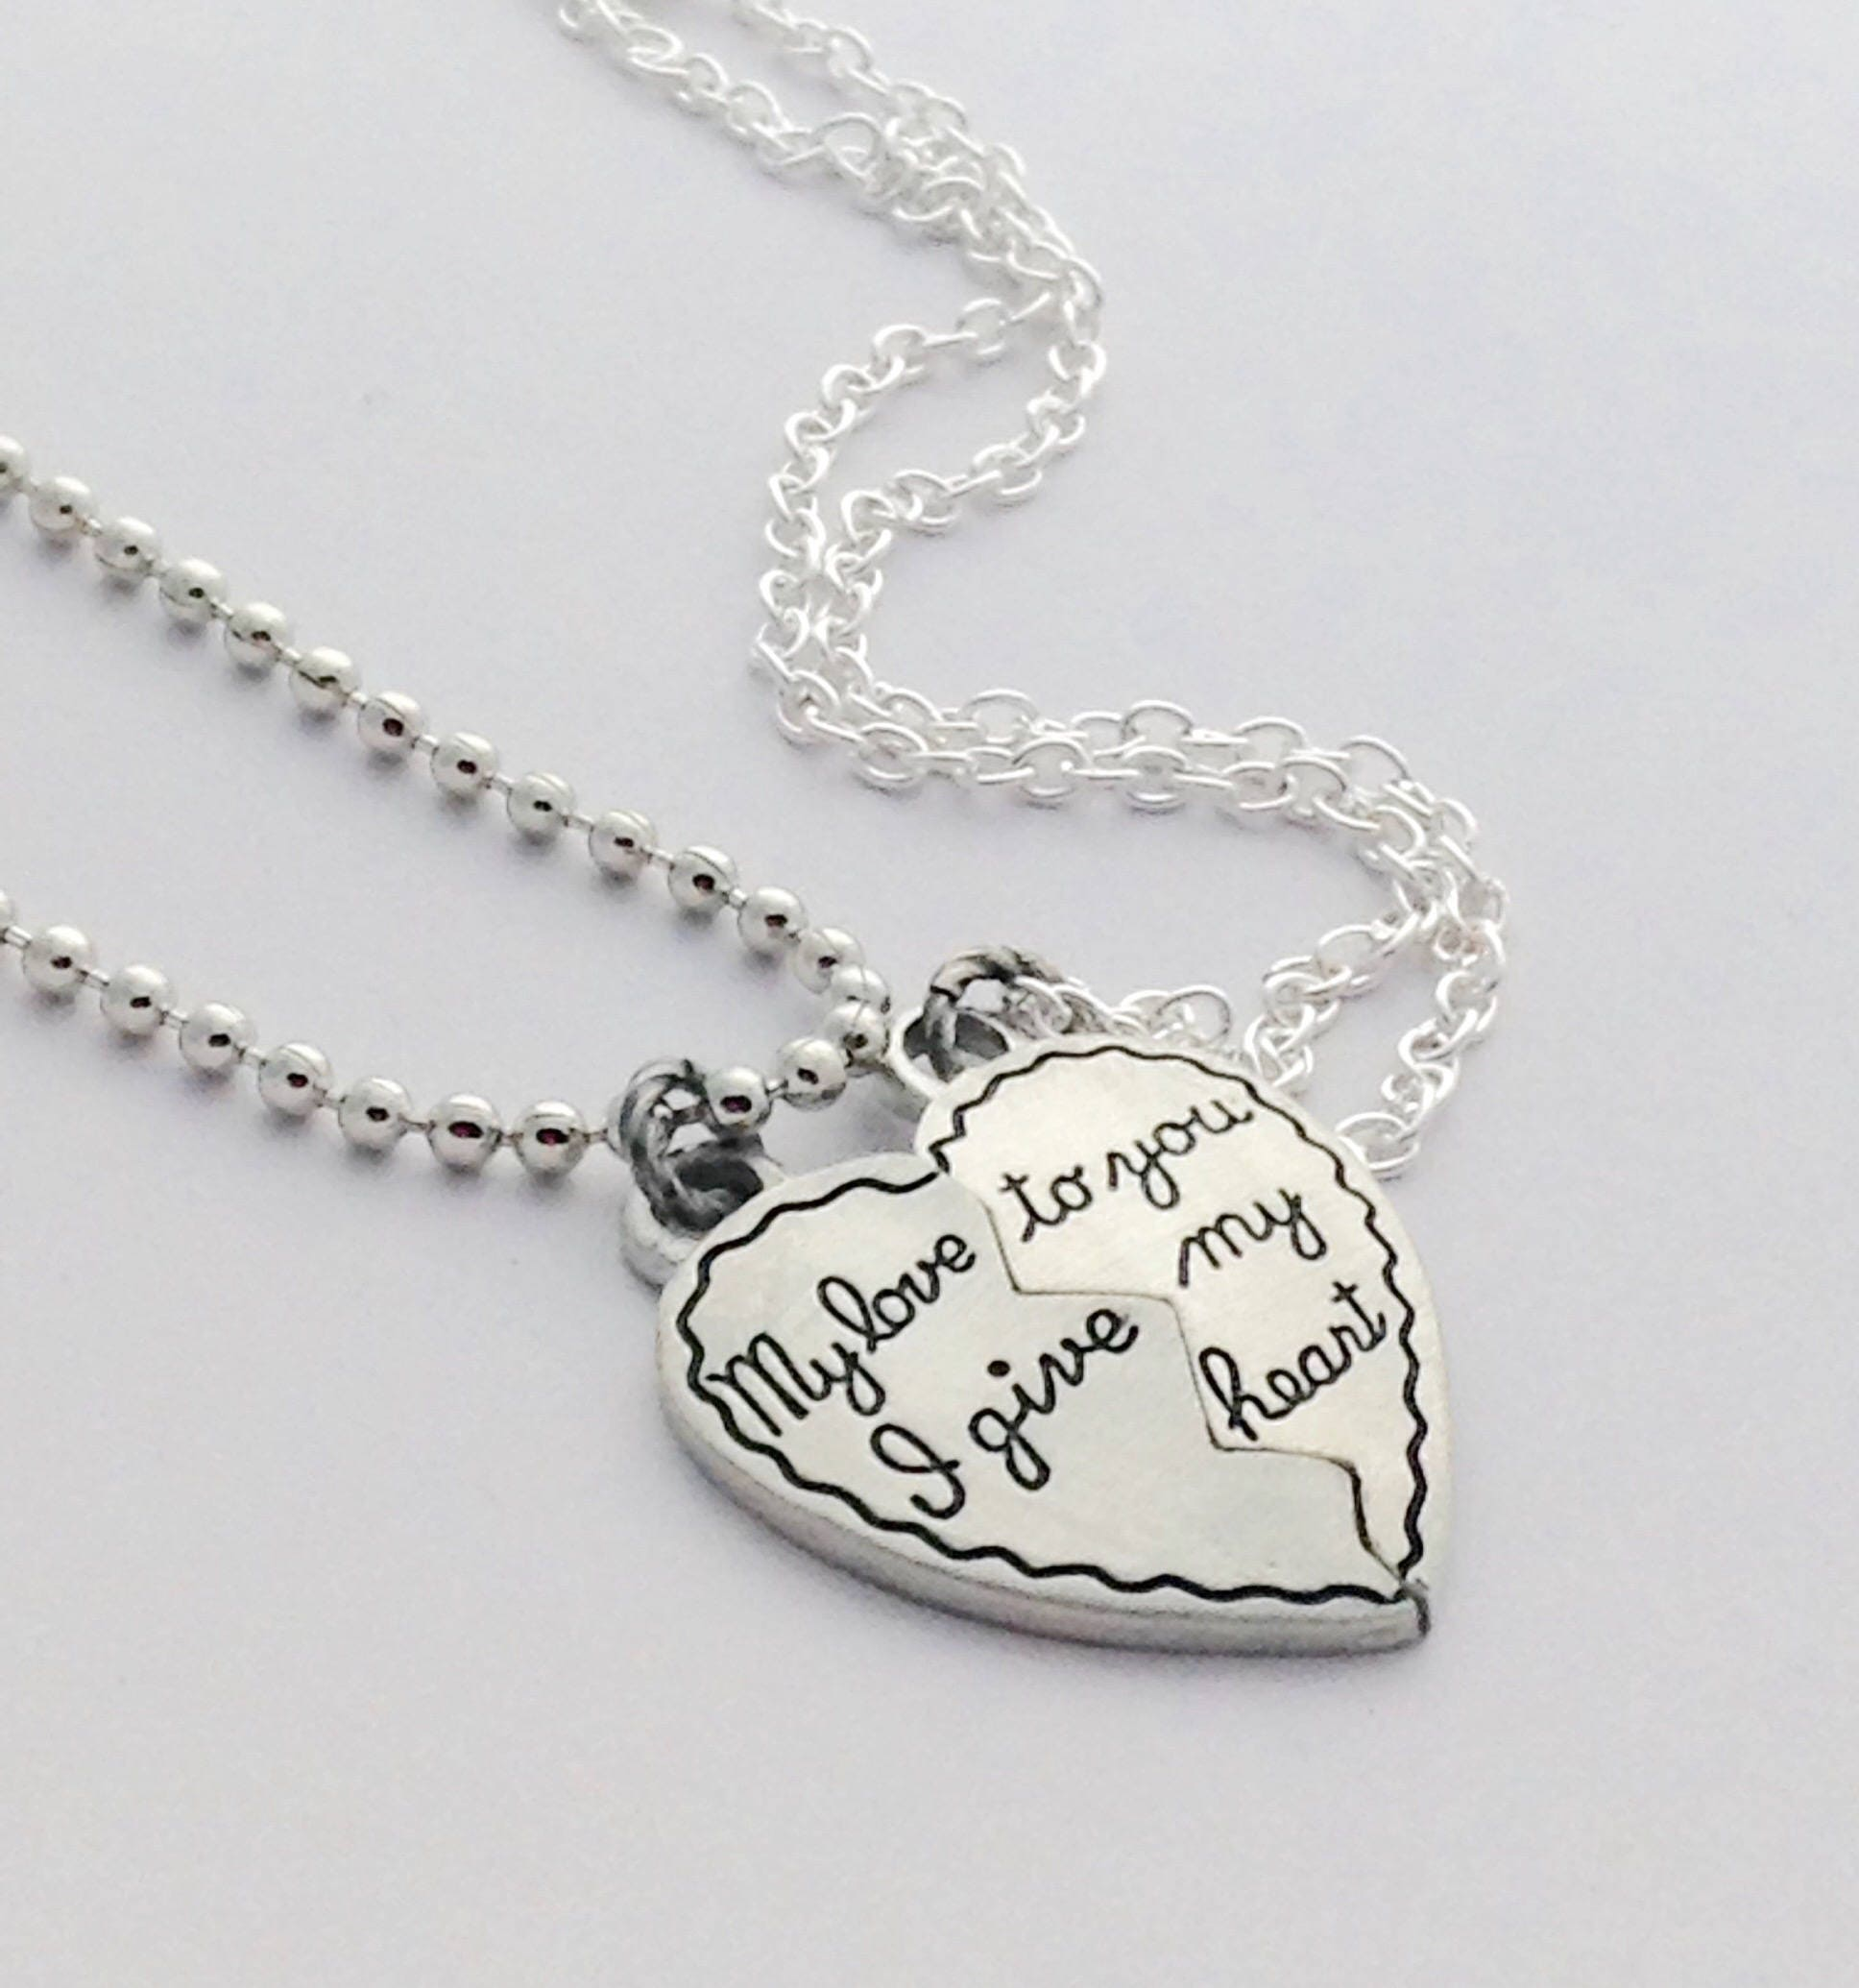 Couples Necklaces Gift For Boyfriend Girlfriend Gifts Half